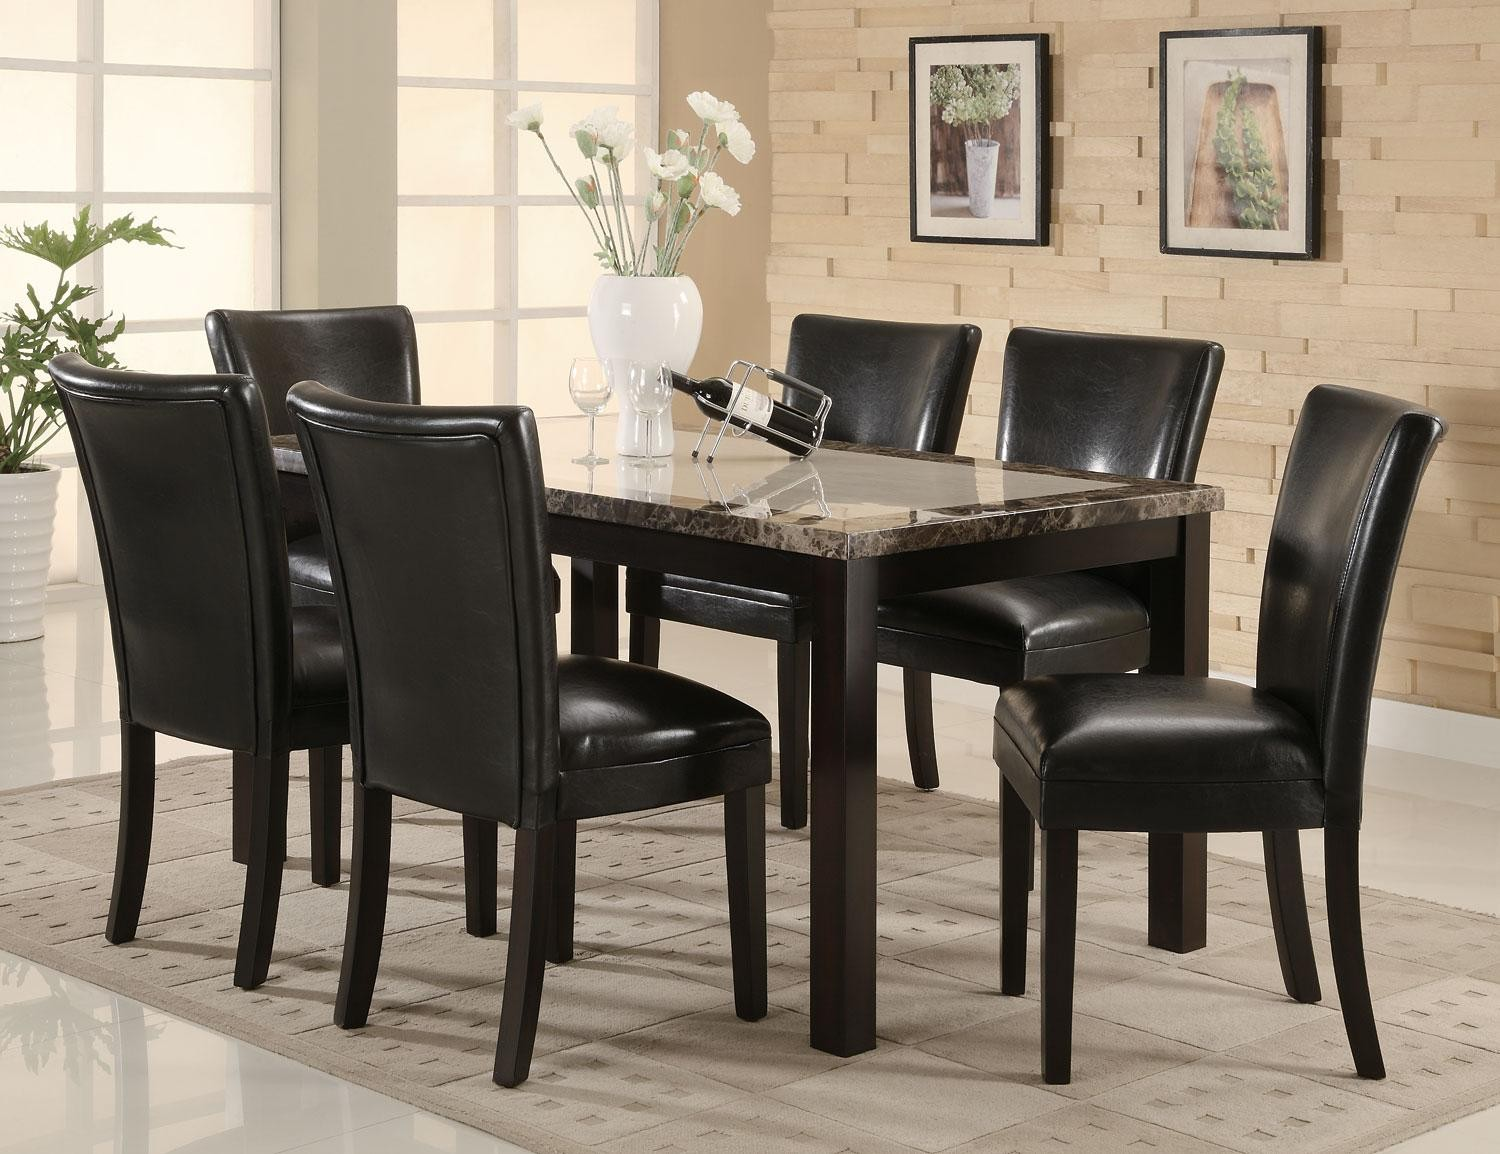 Rectangular Marble Dining Set Shop For Affordable Home Furniture Decor Outdoors And More